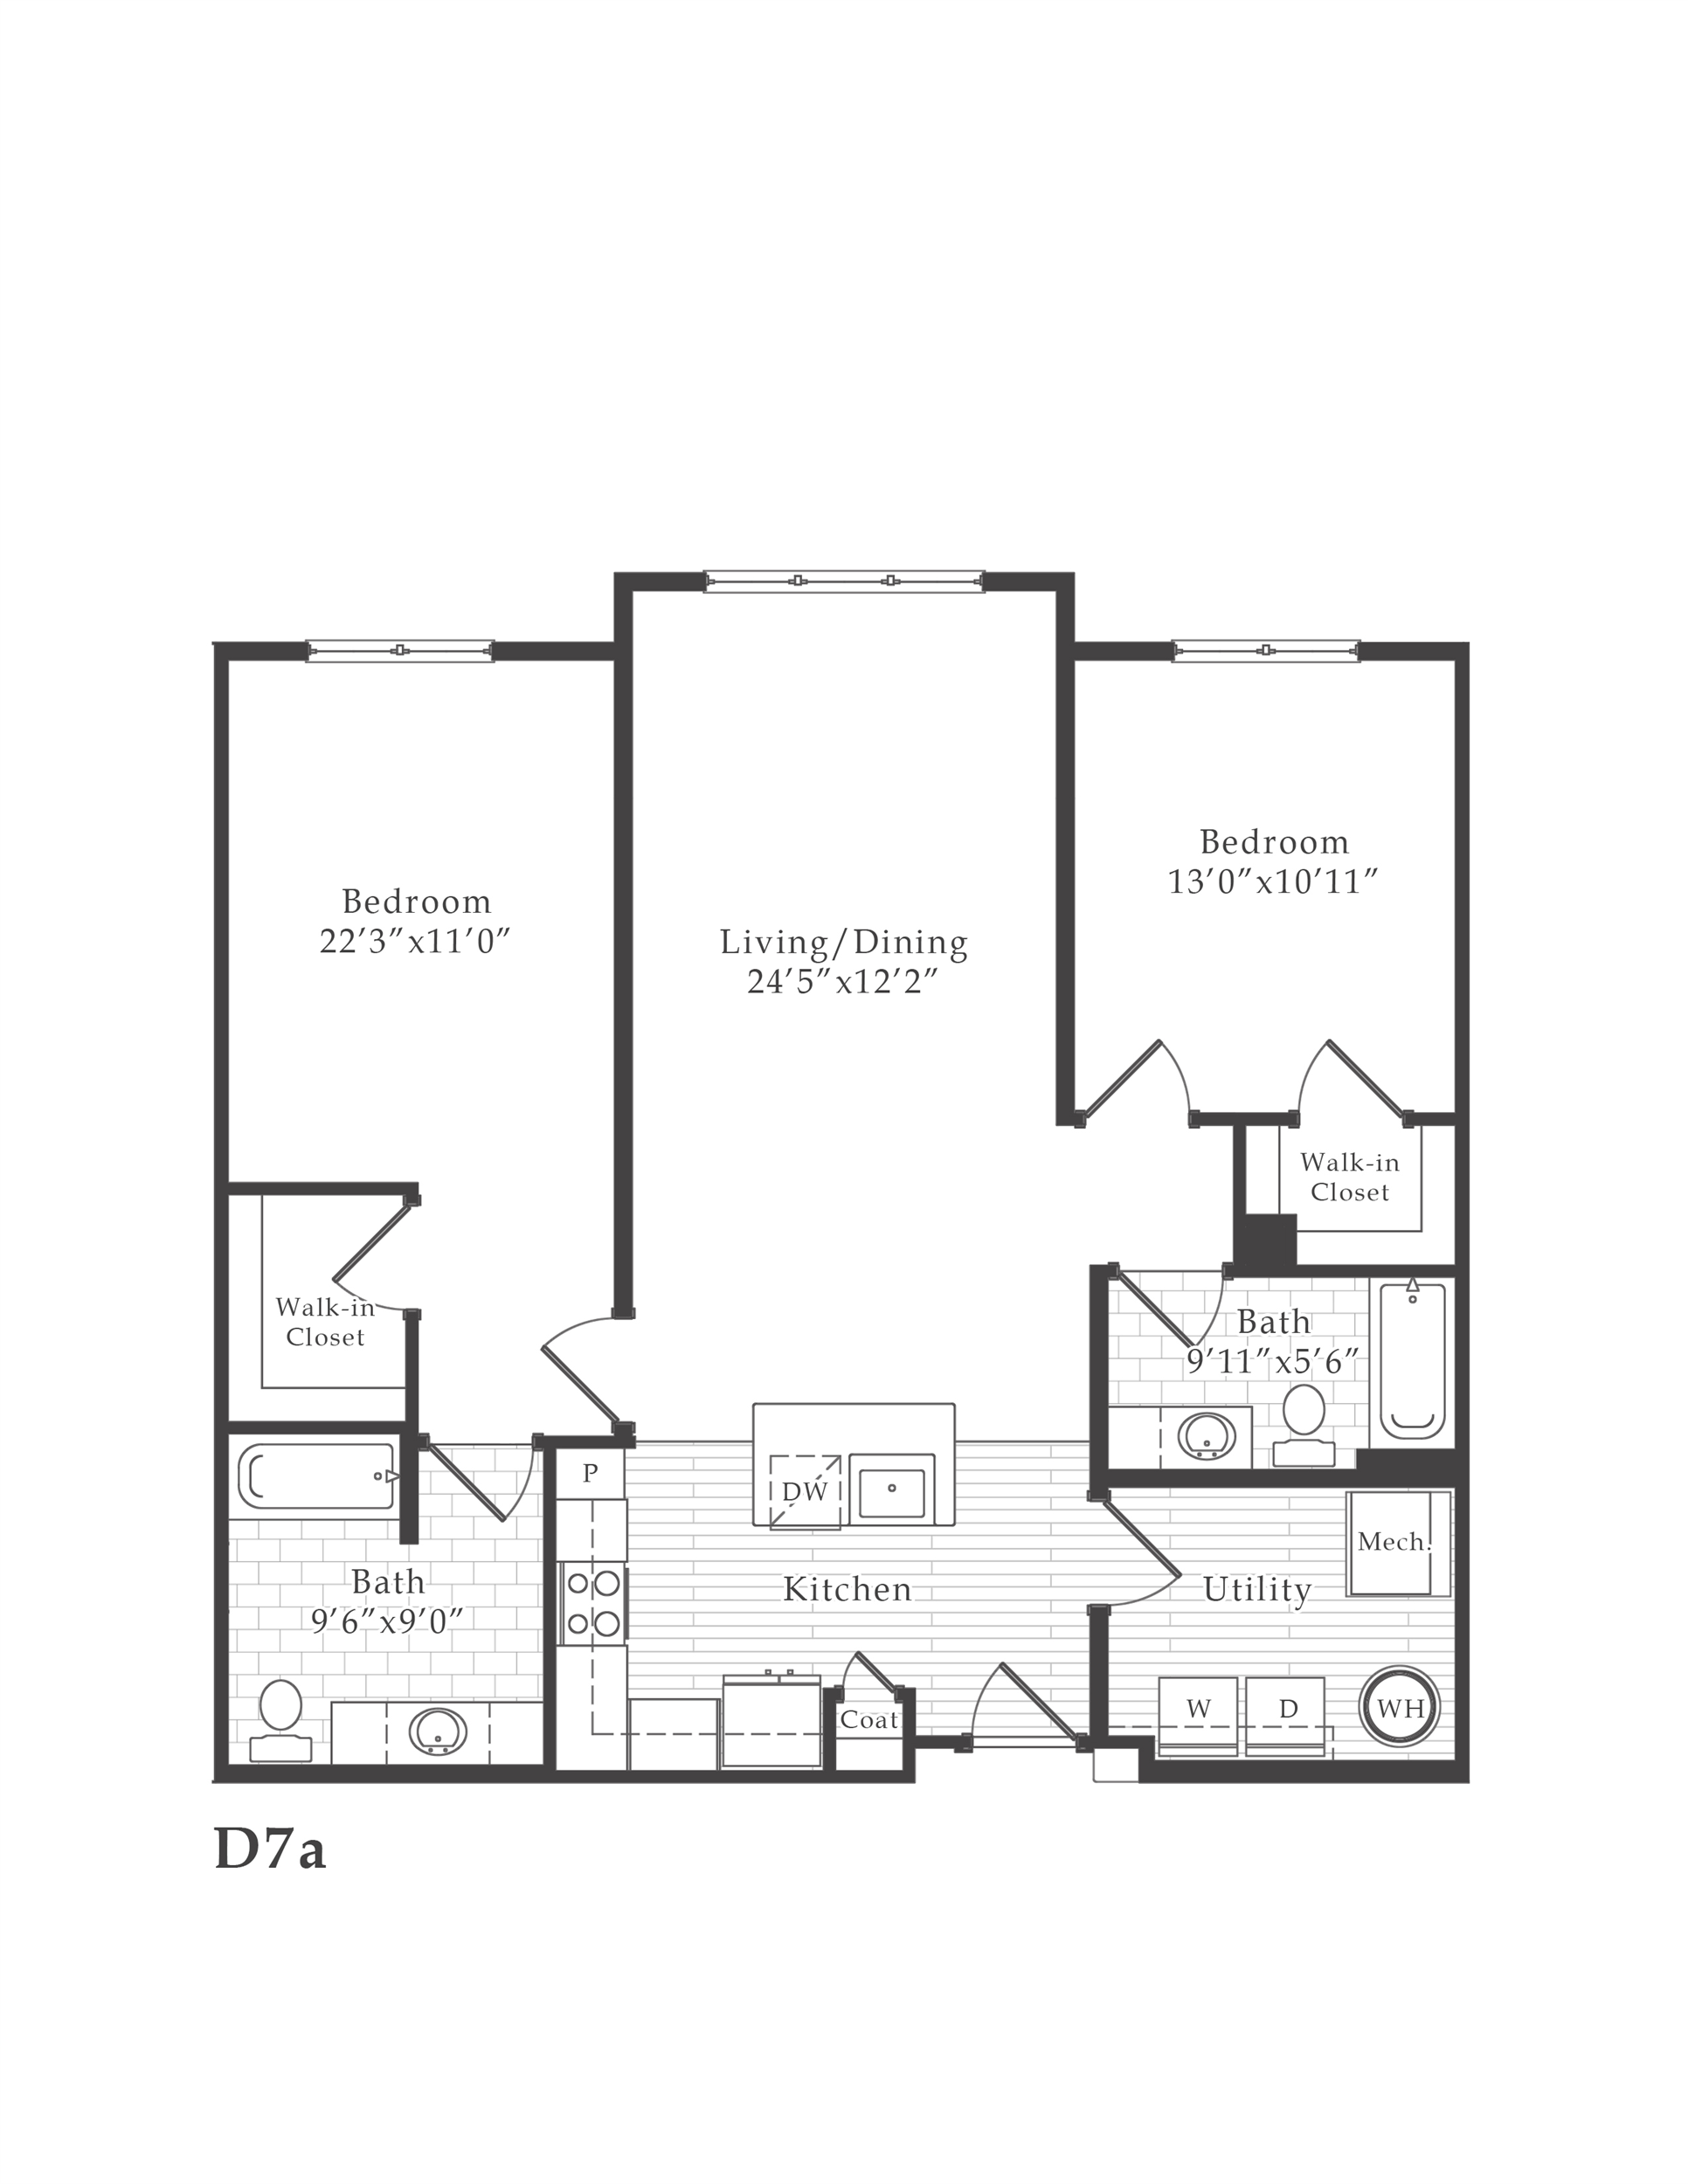 816bc04 md laurel thevine p0637686 vined7a1199 2 floorplan